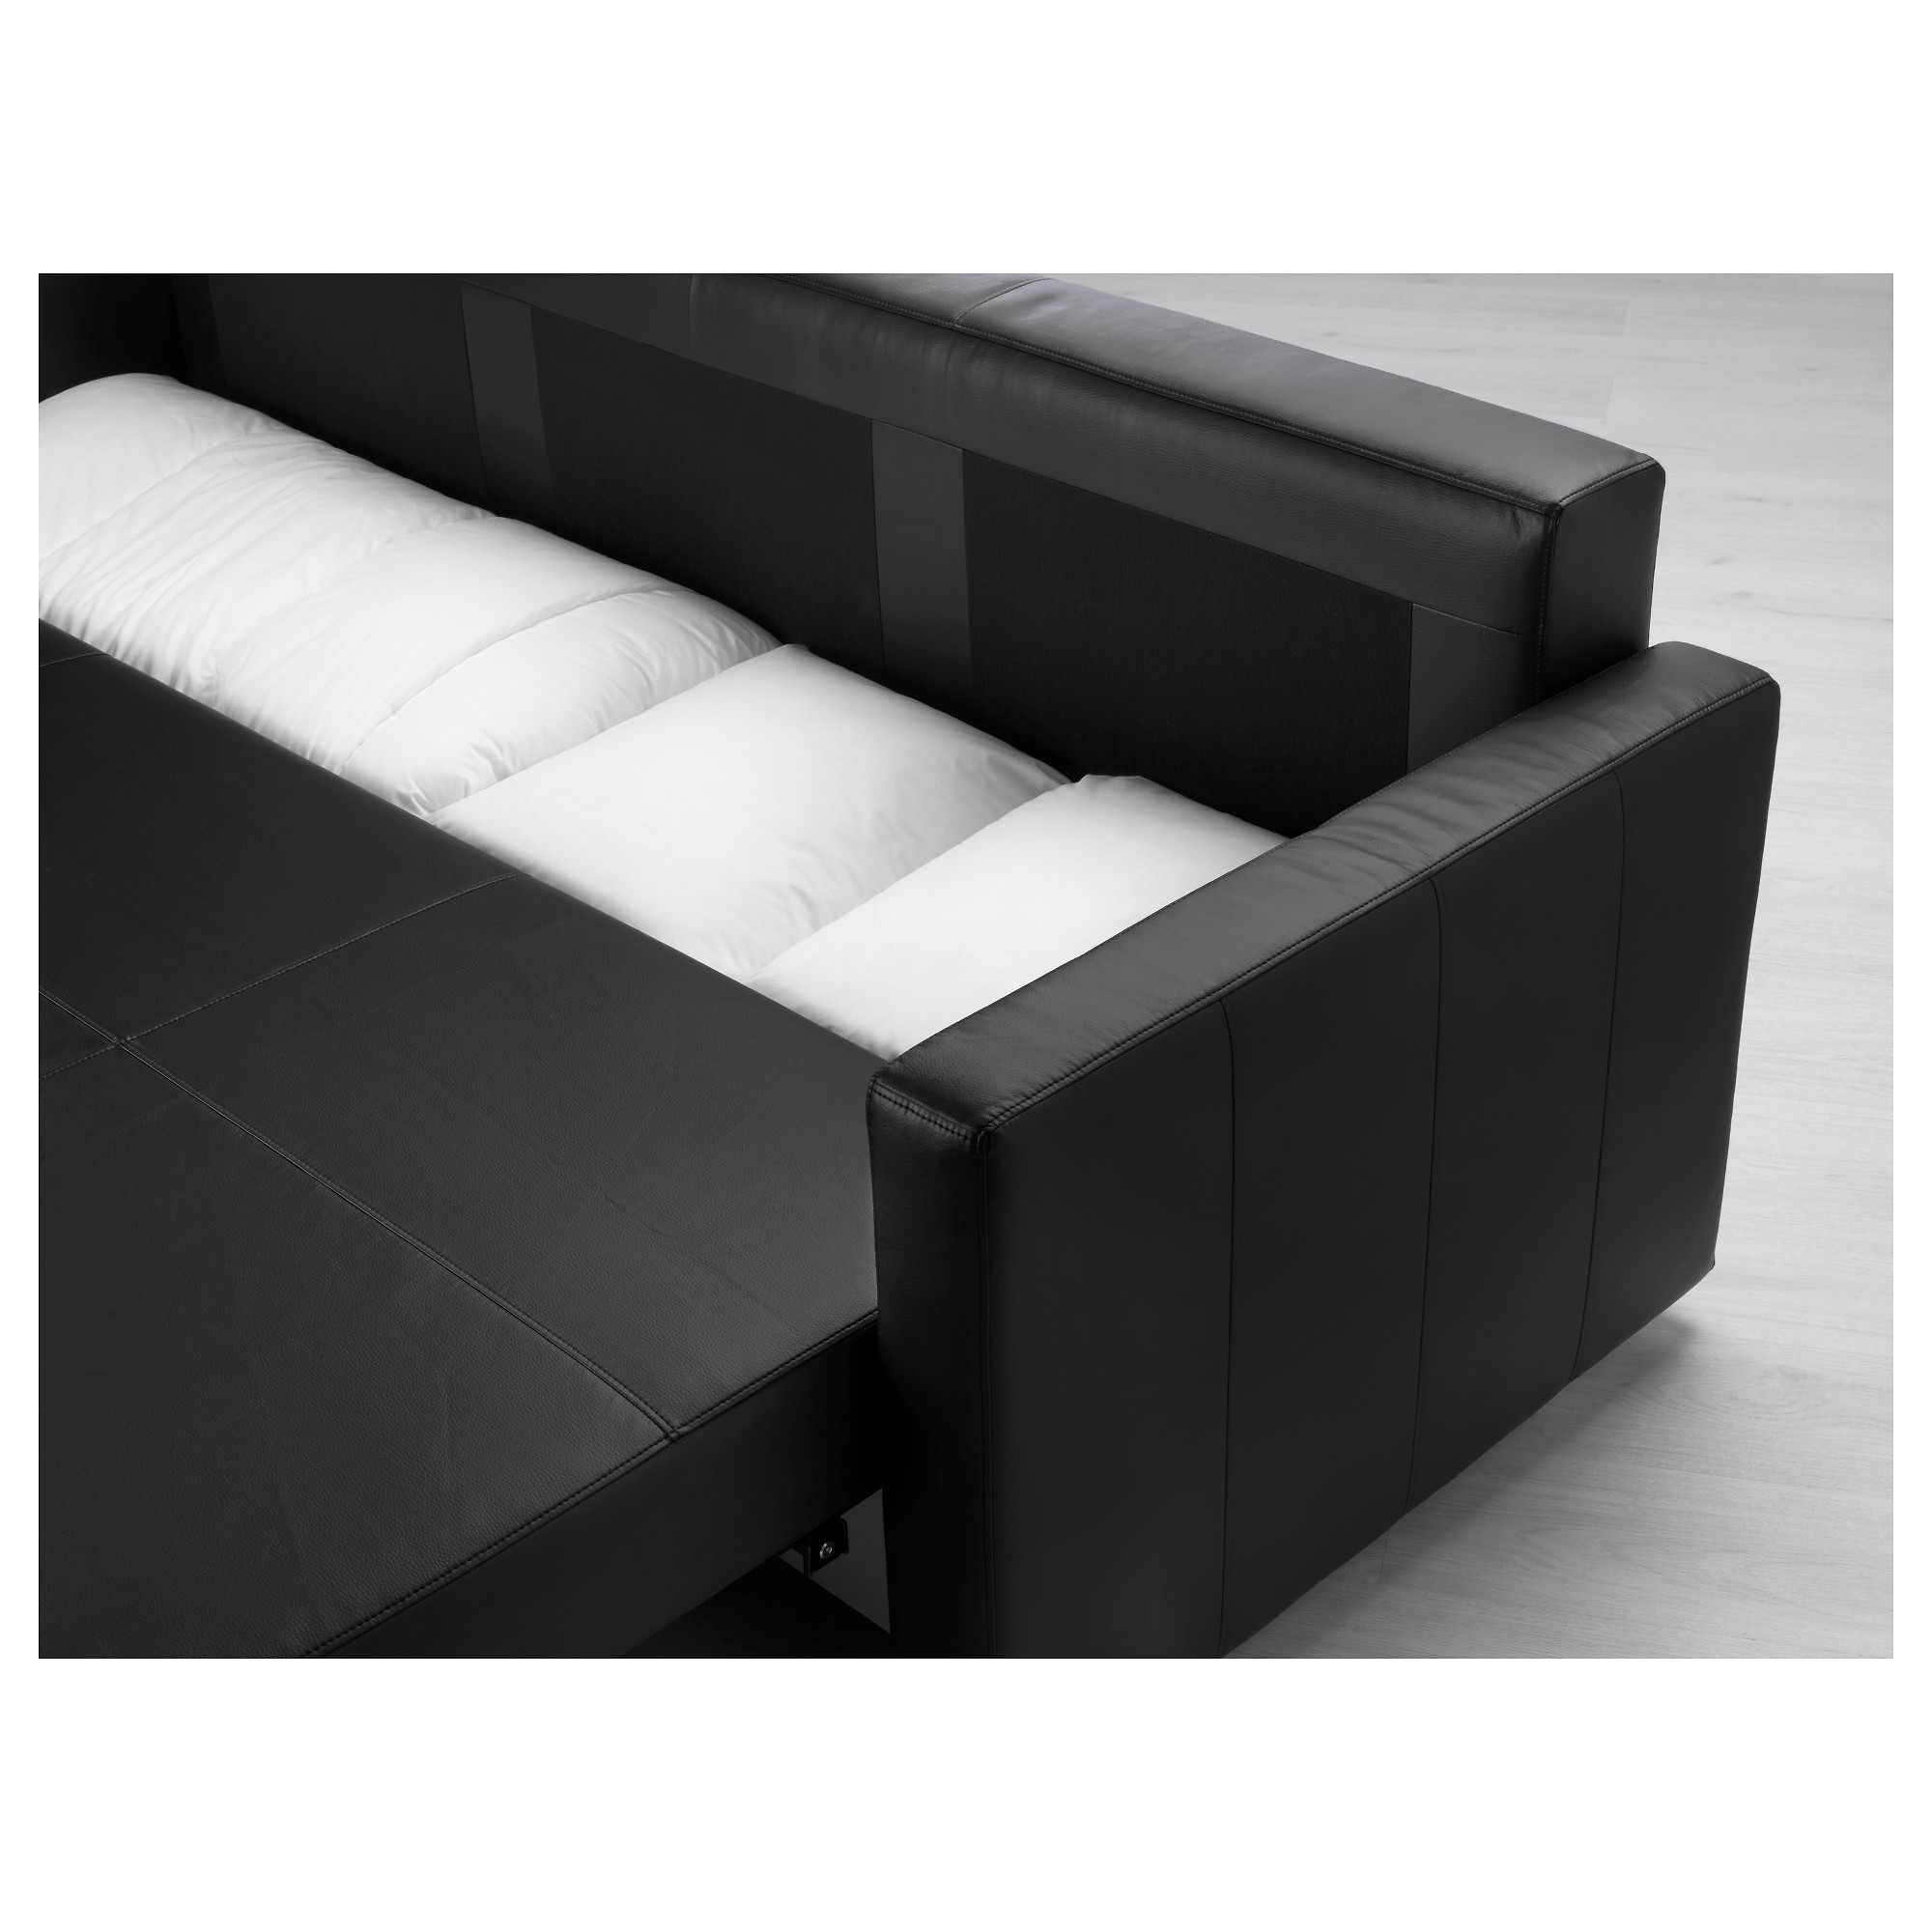 FRIHETEN Sofa bed Skiftebo dark gray IKEA